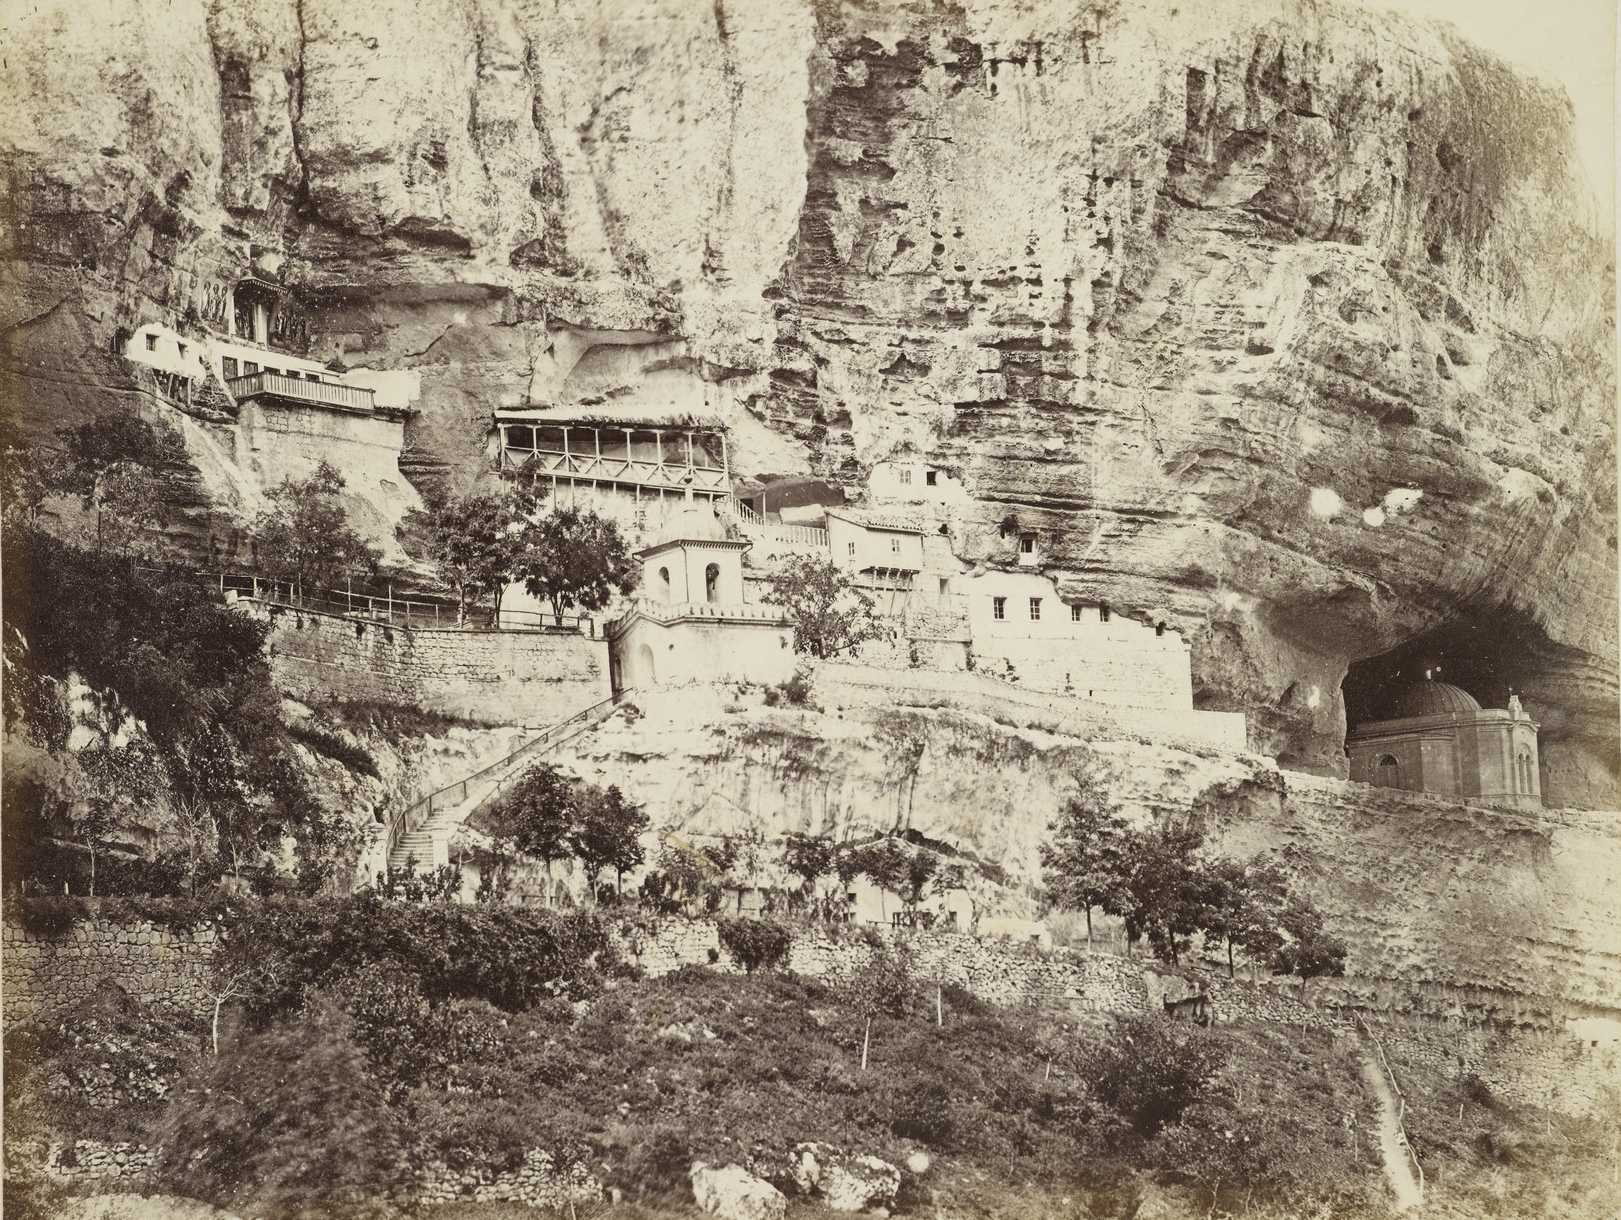 General view of the Assumption monastery near Bakhchisarai. Photos from a trip Prince of Wales [?] in the Crimea in 1869.